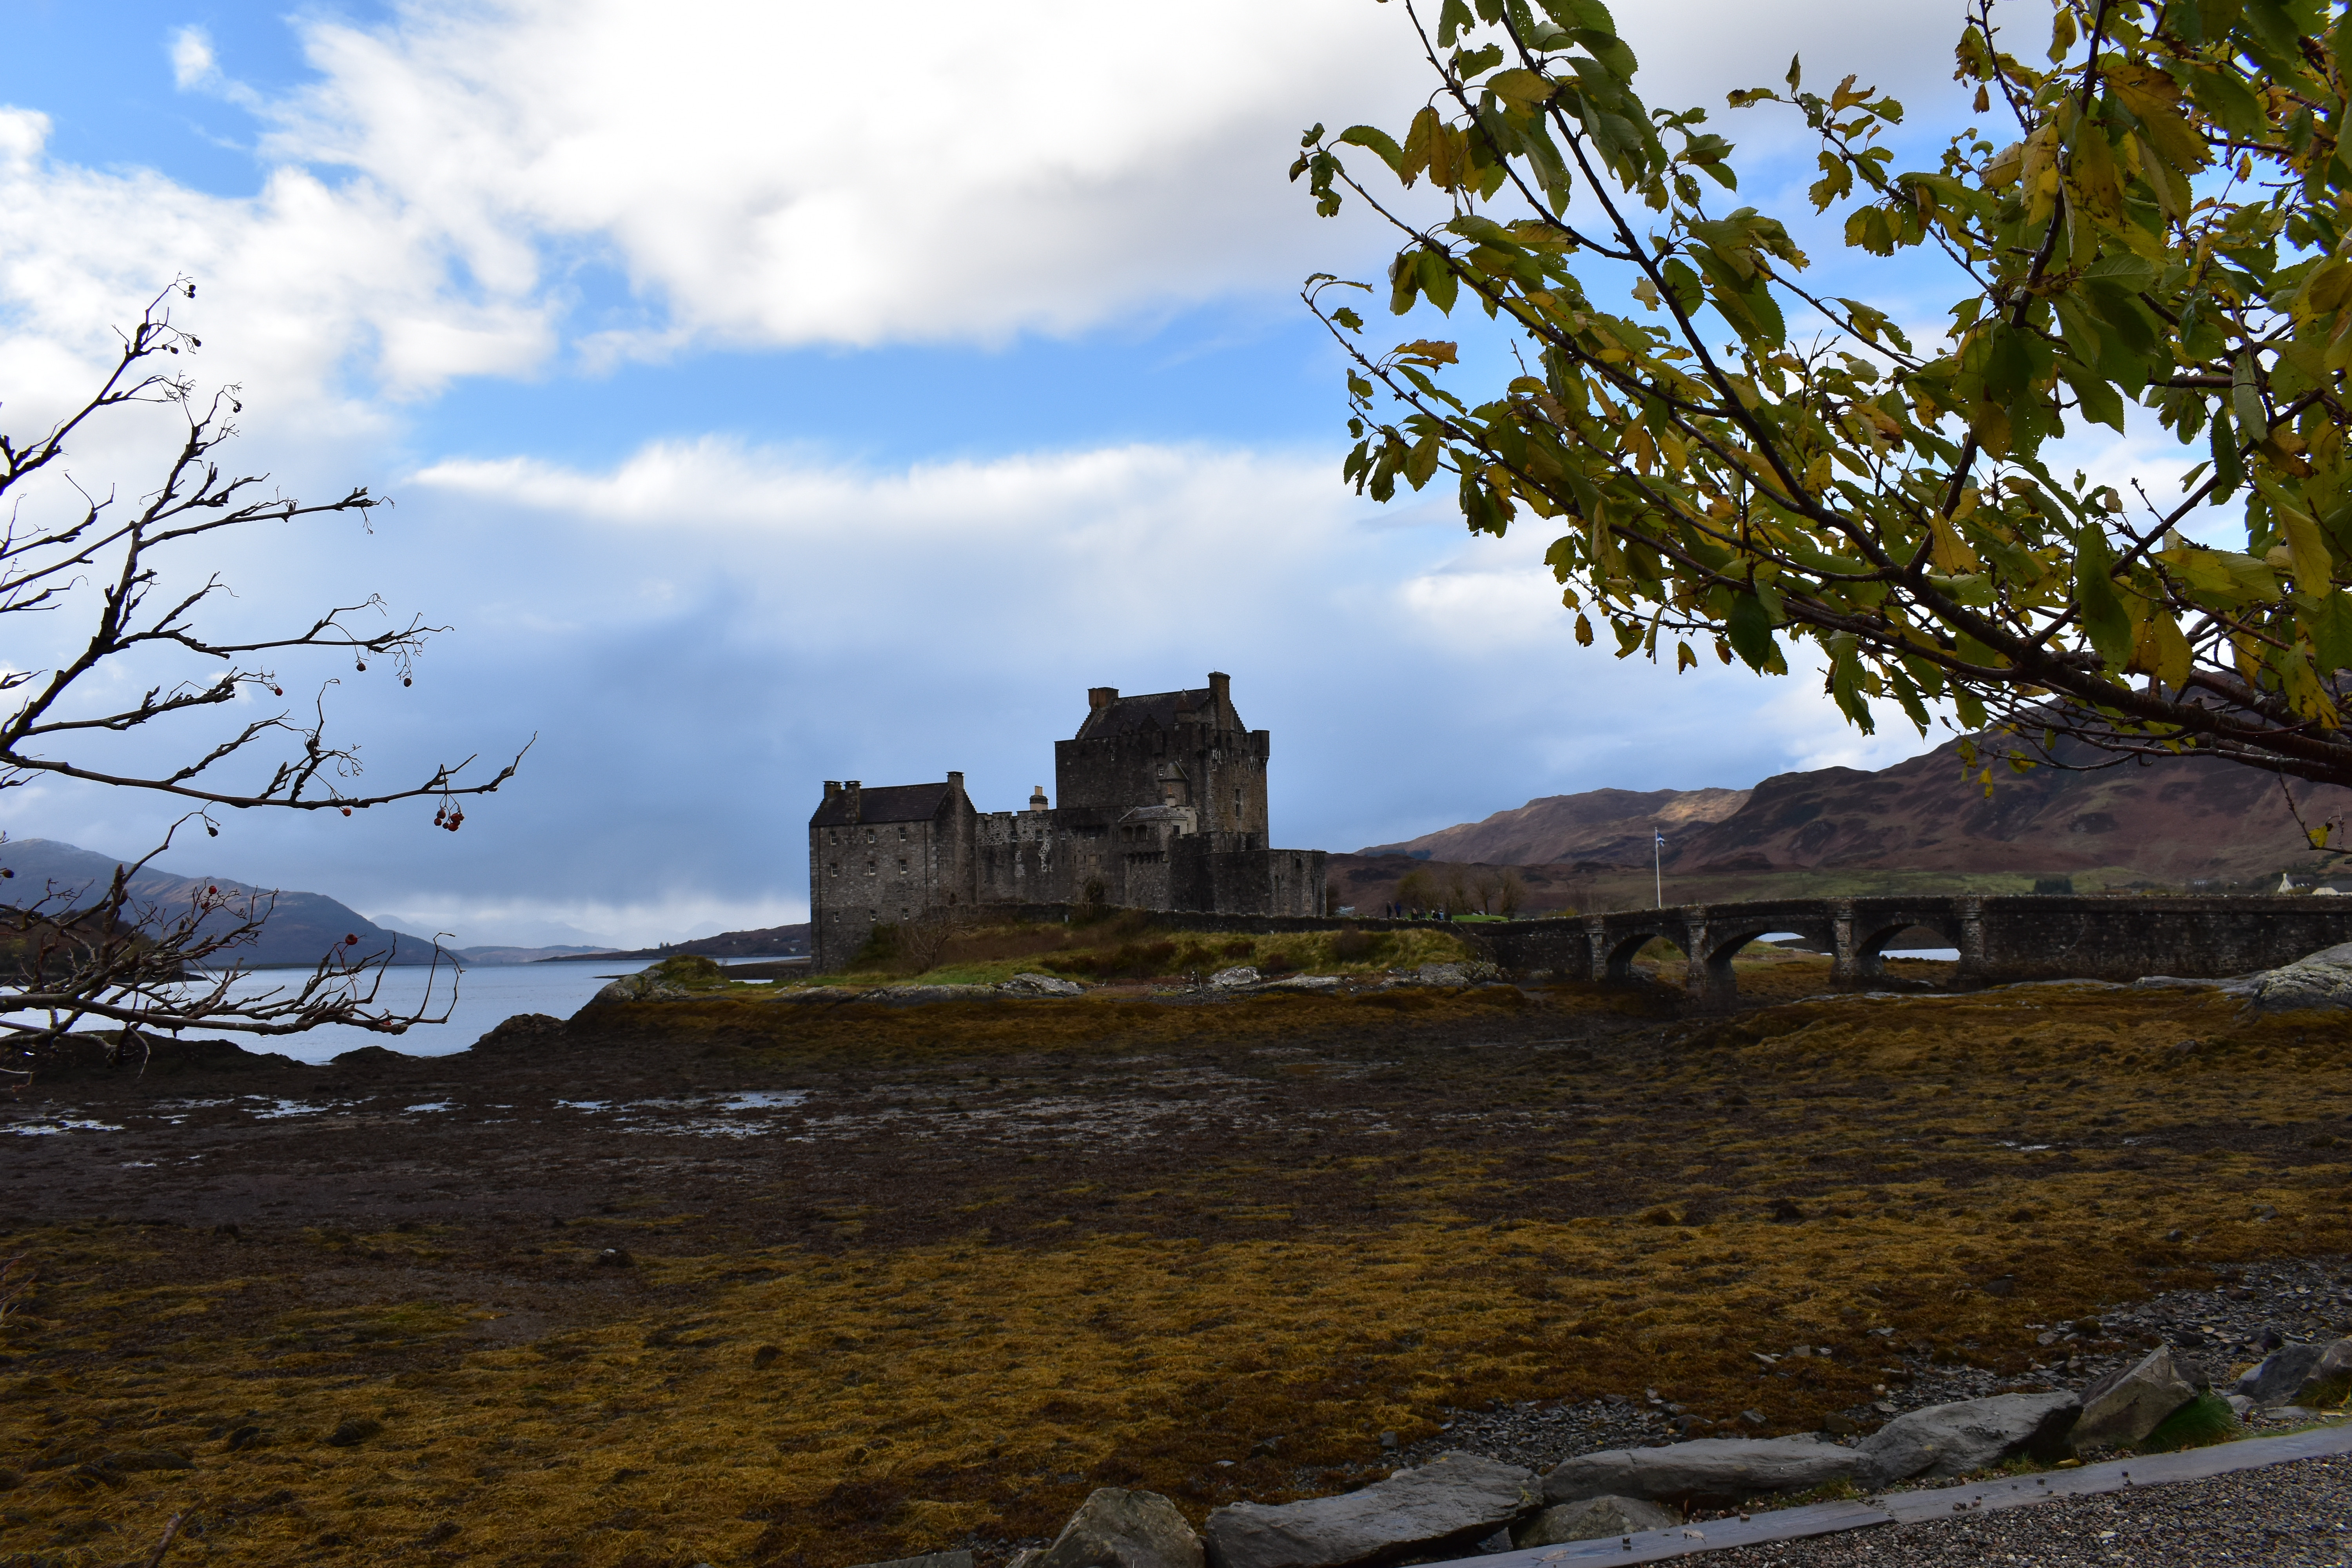 The Only One - Loch Alsh